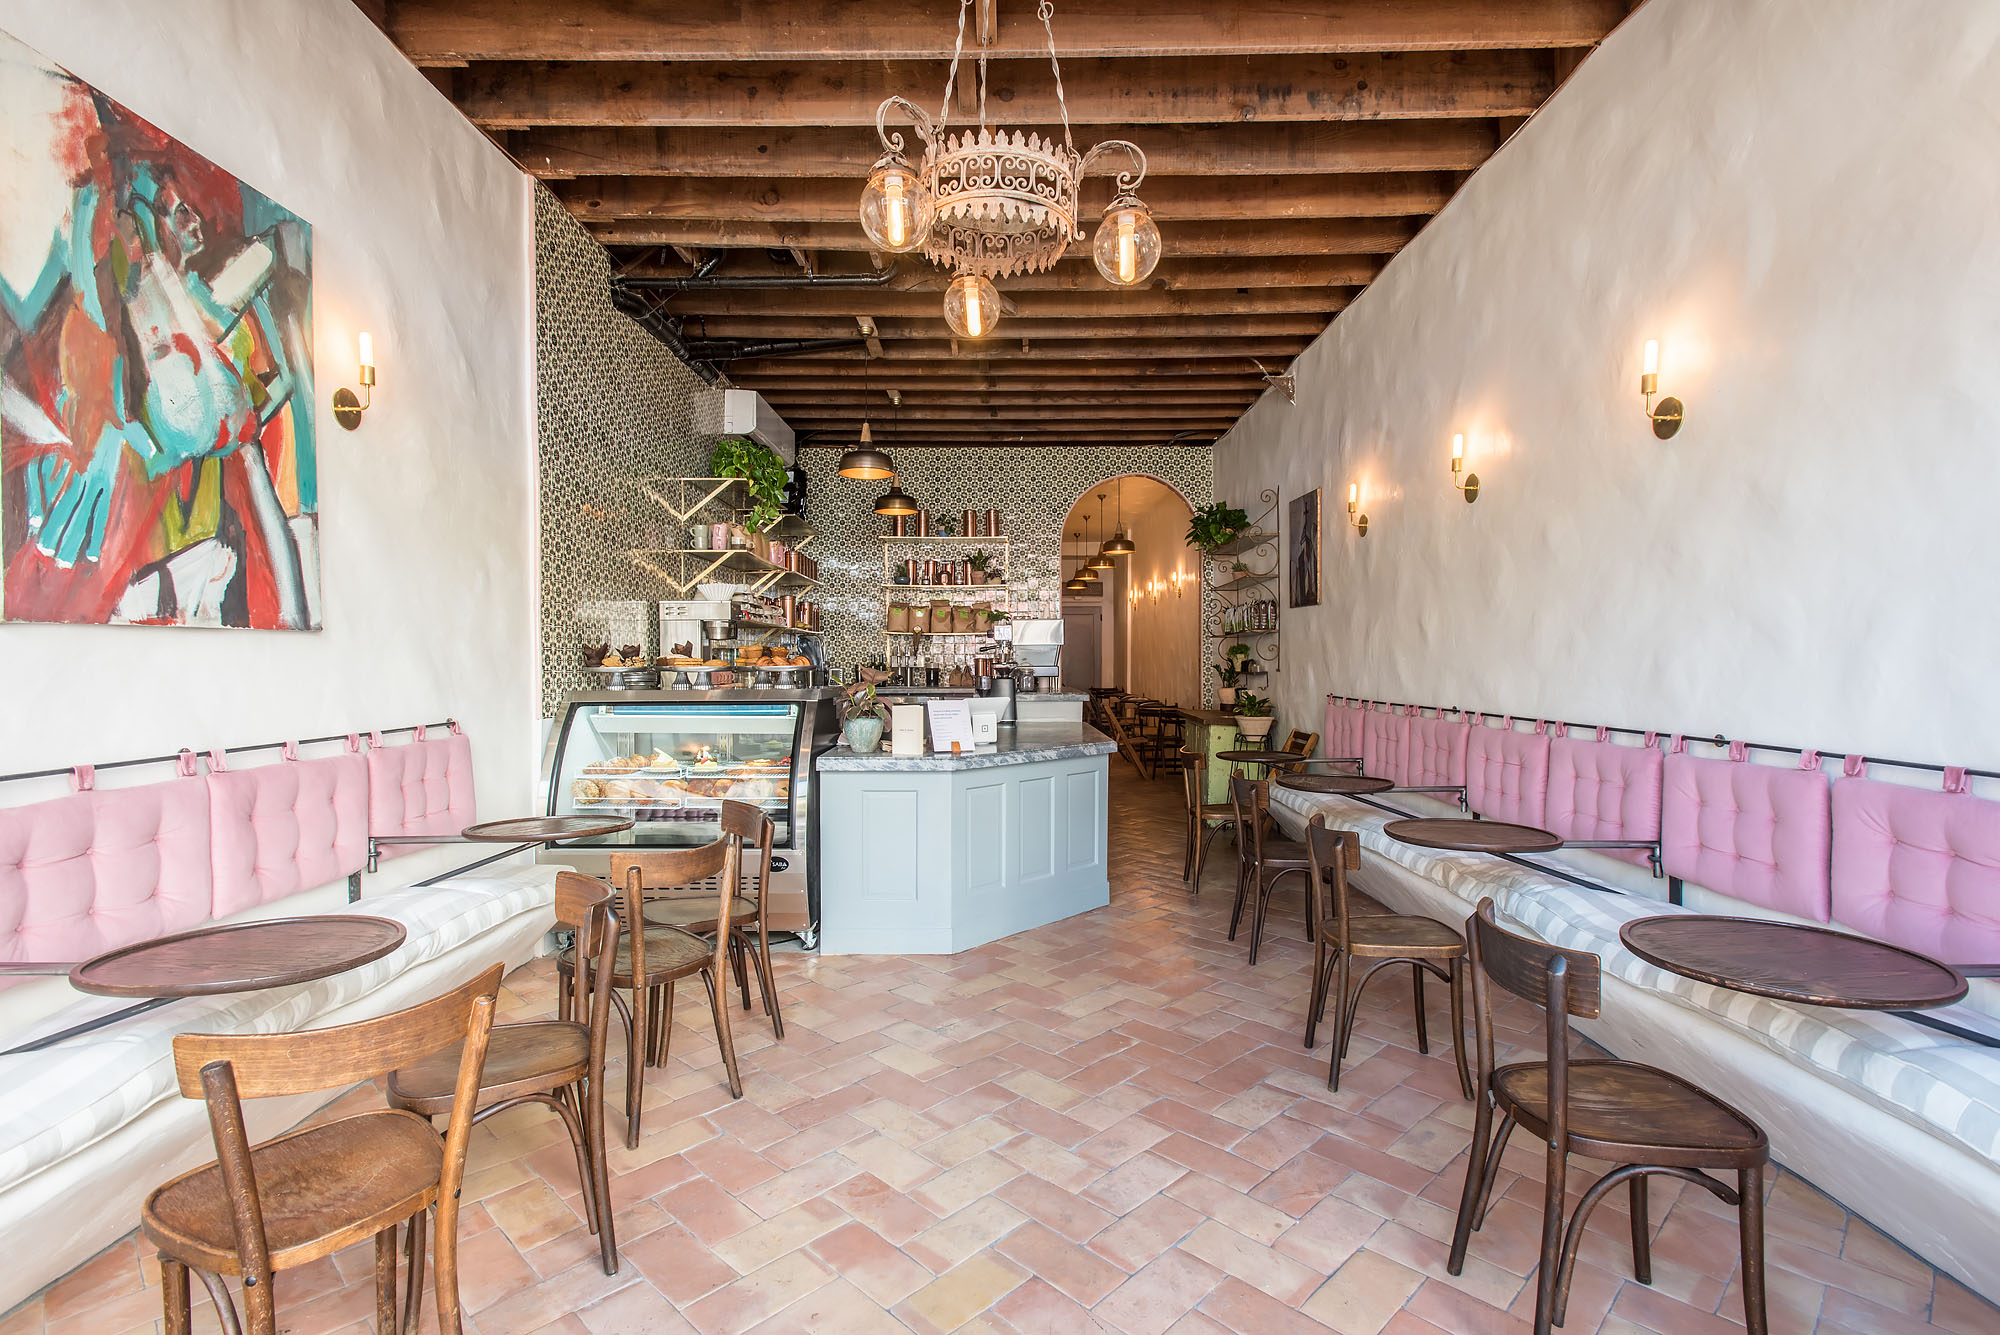 bardonna goes continental casual in silver lake - eater la